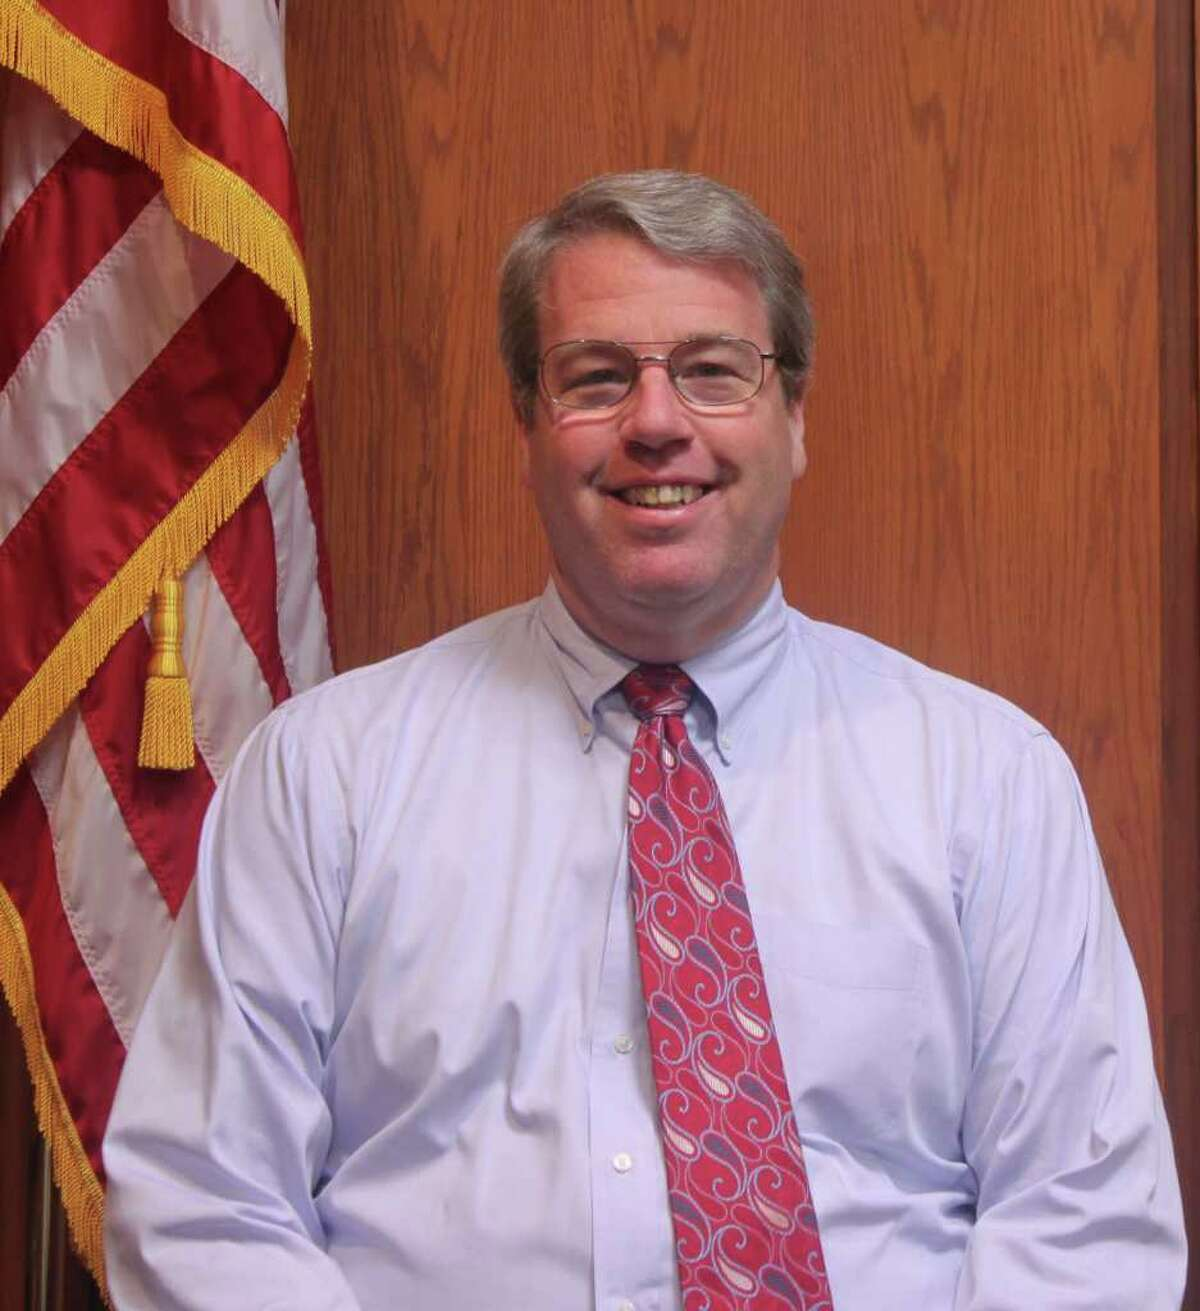 Michael Mason, a Republican, was elected chairman of the Greenwich Board of Estimate and Taxation on Thursday, Jan. 5, 2012.